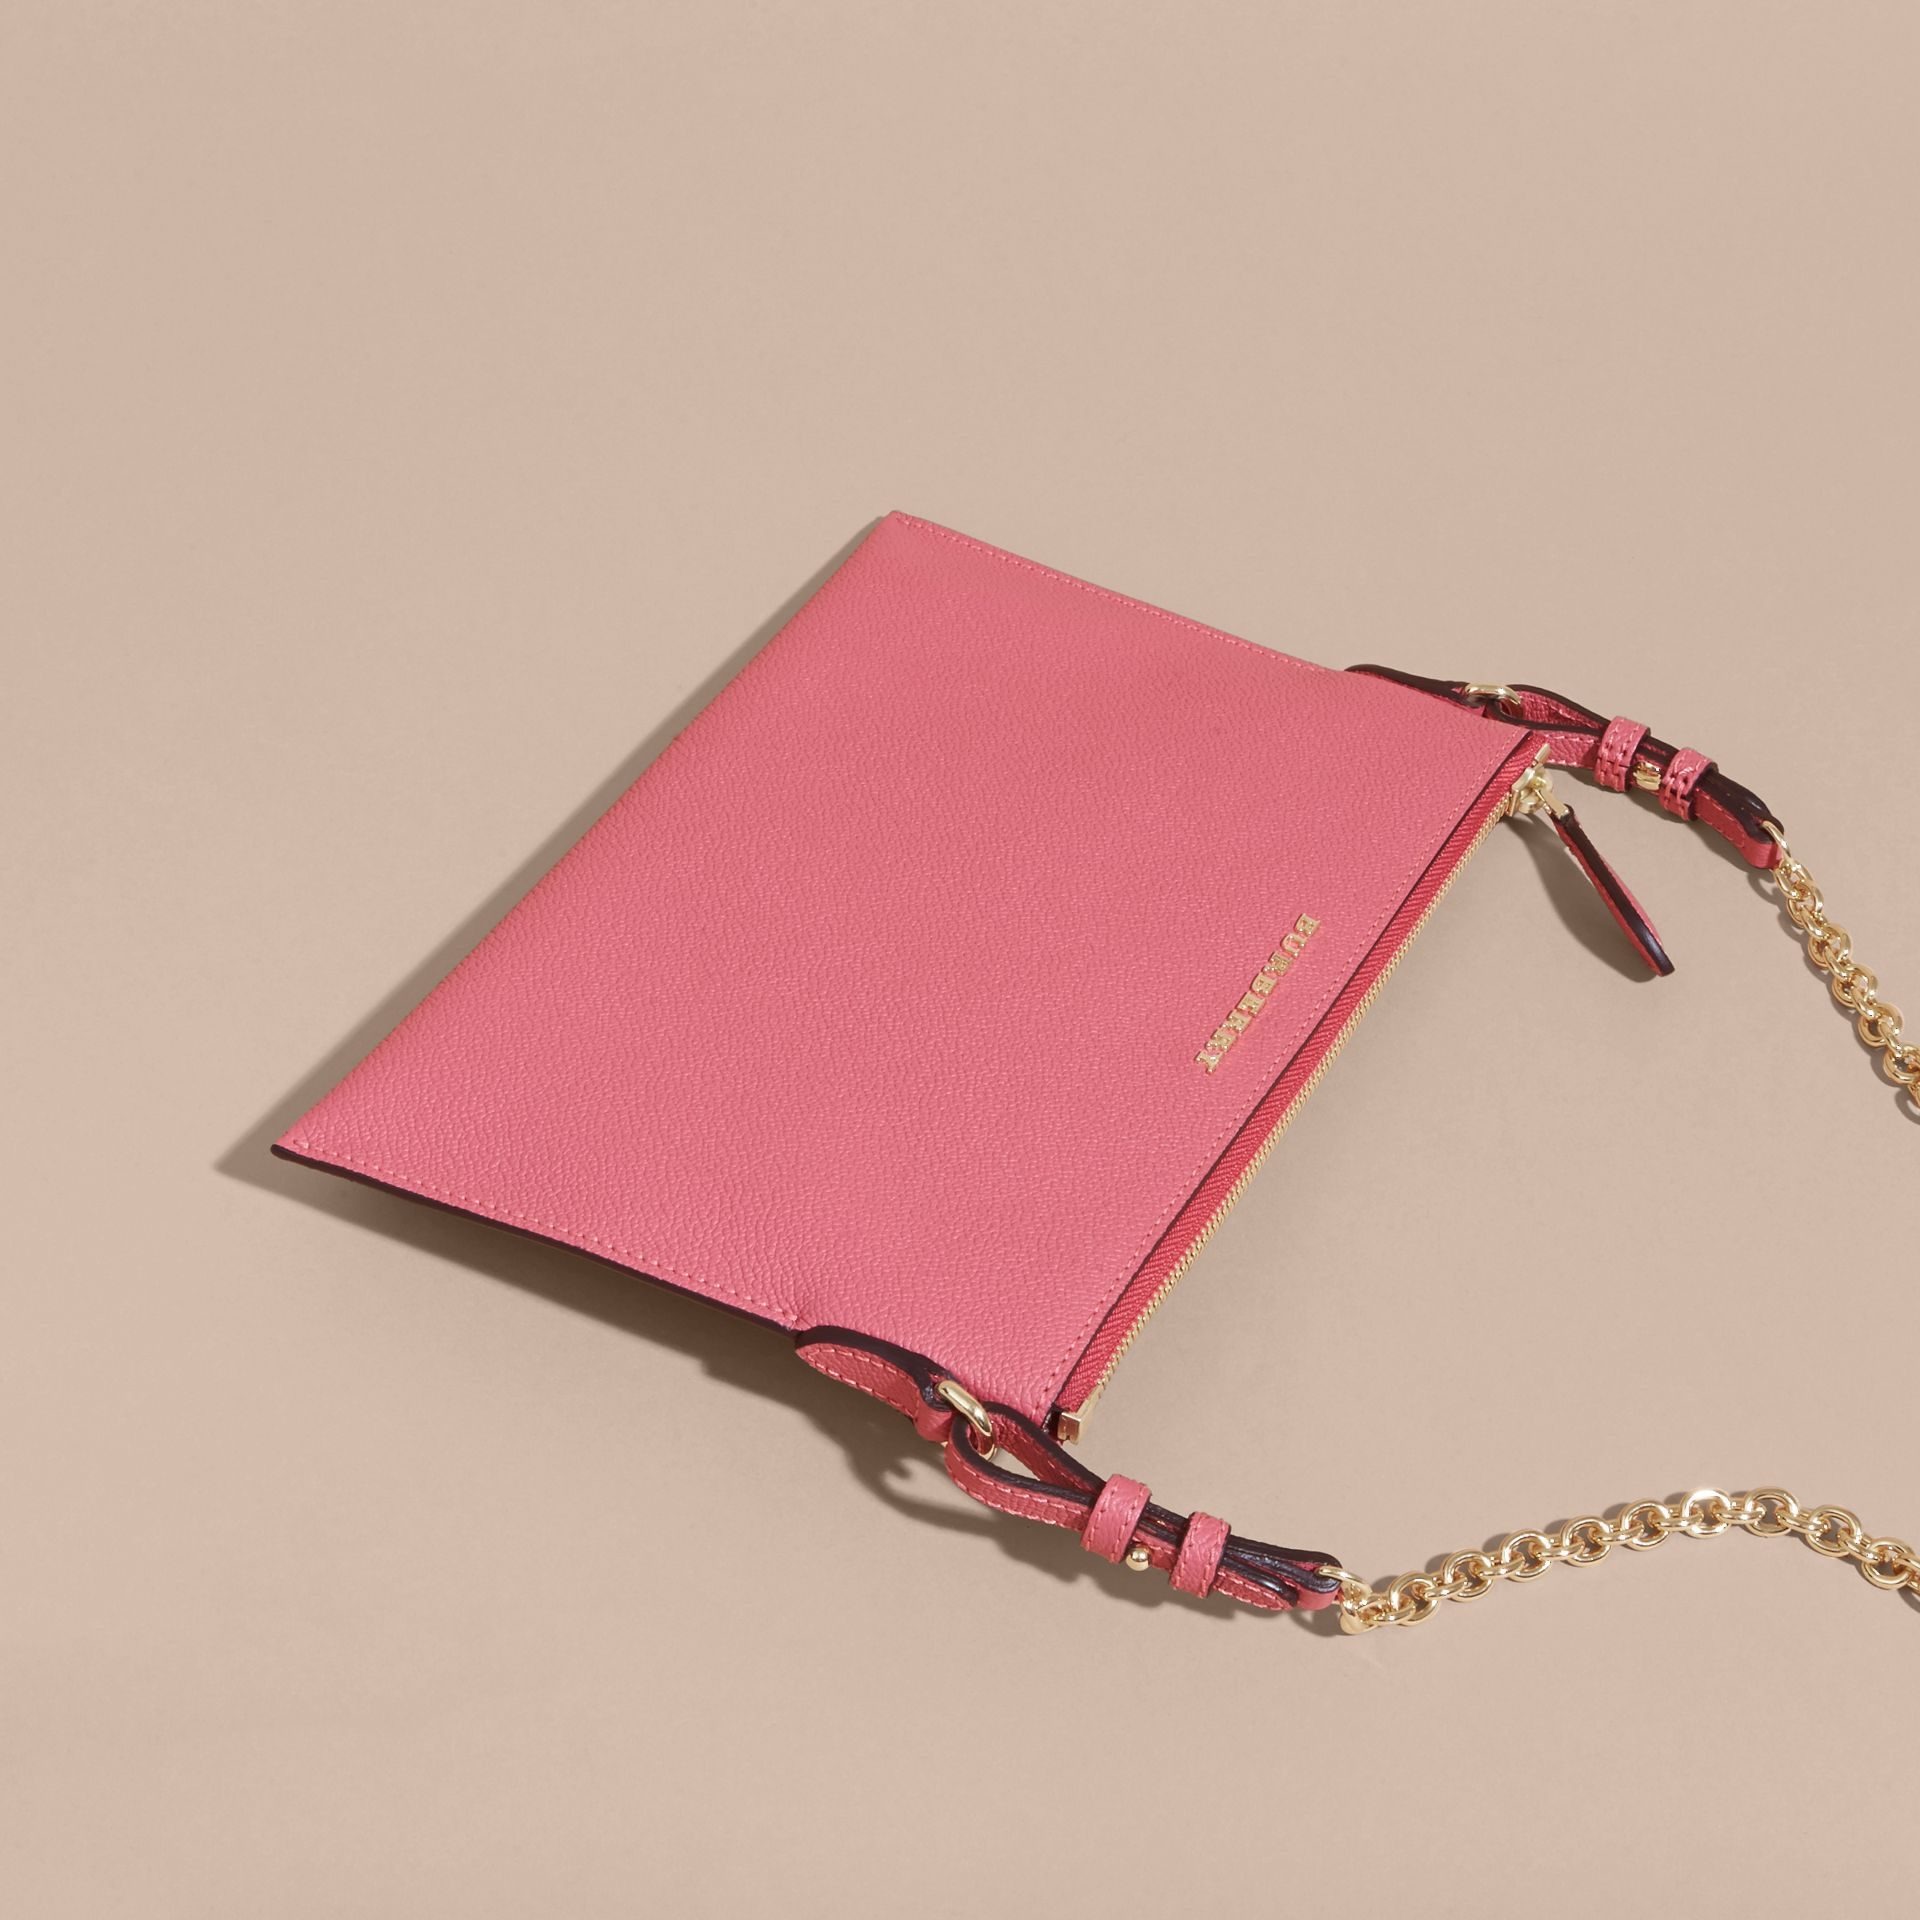 Leather Clutch Bag with Check Lining in Pink Azalea - gallery image 8